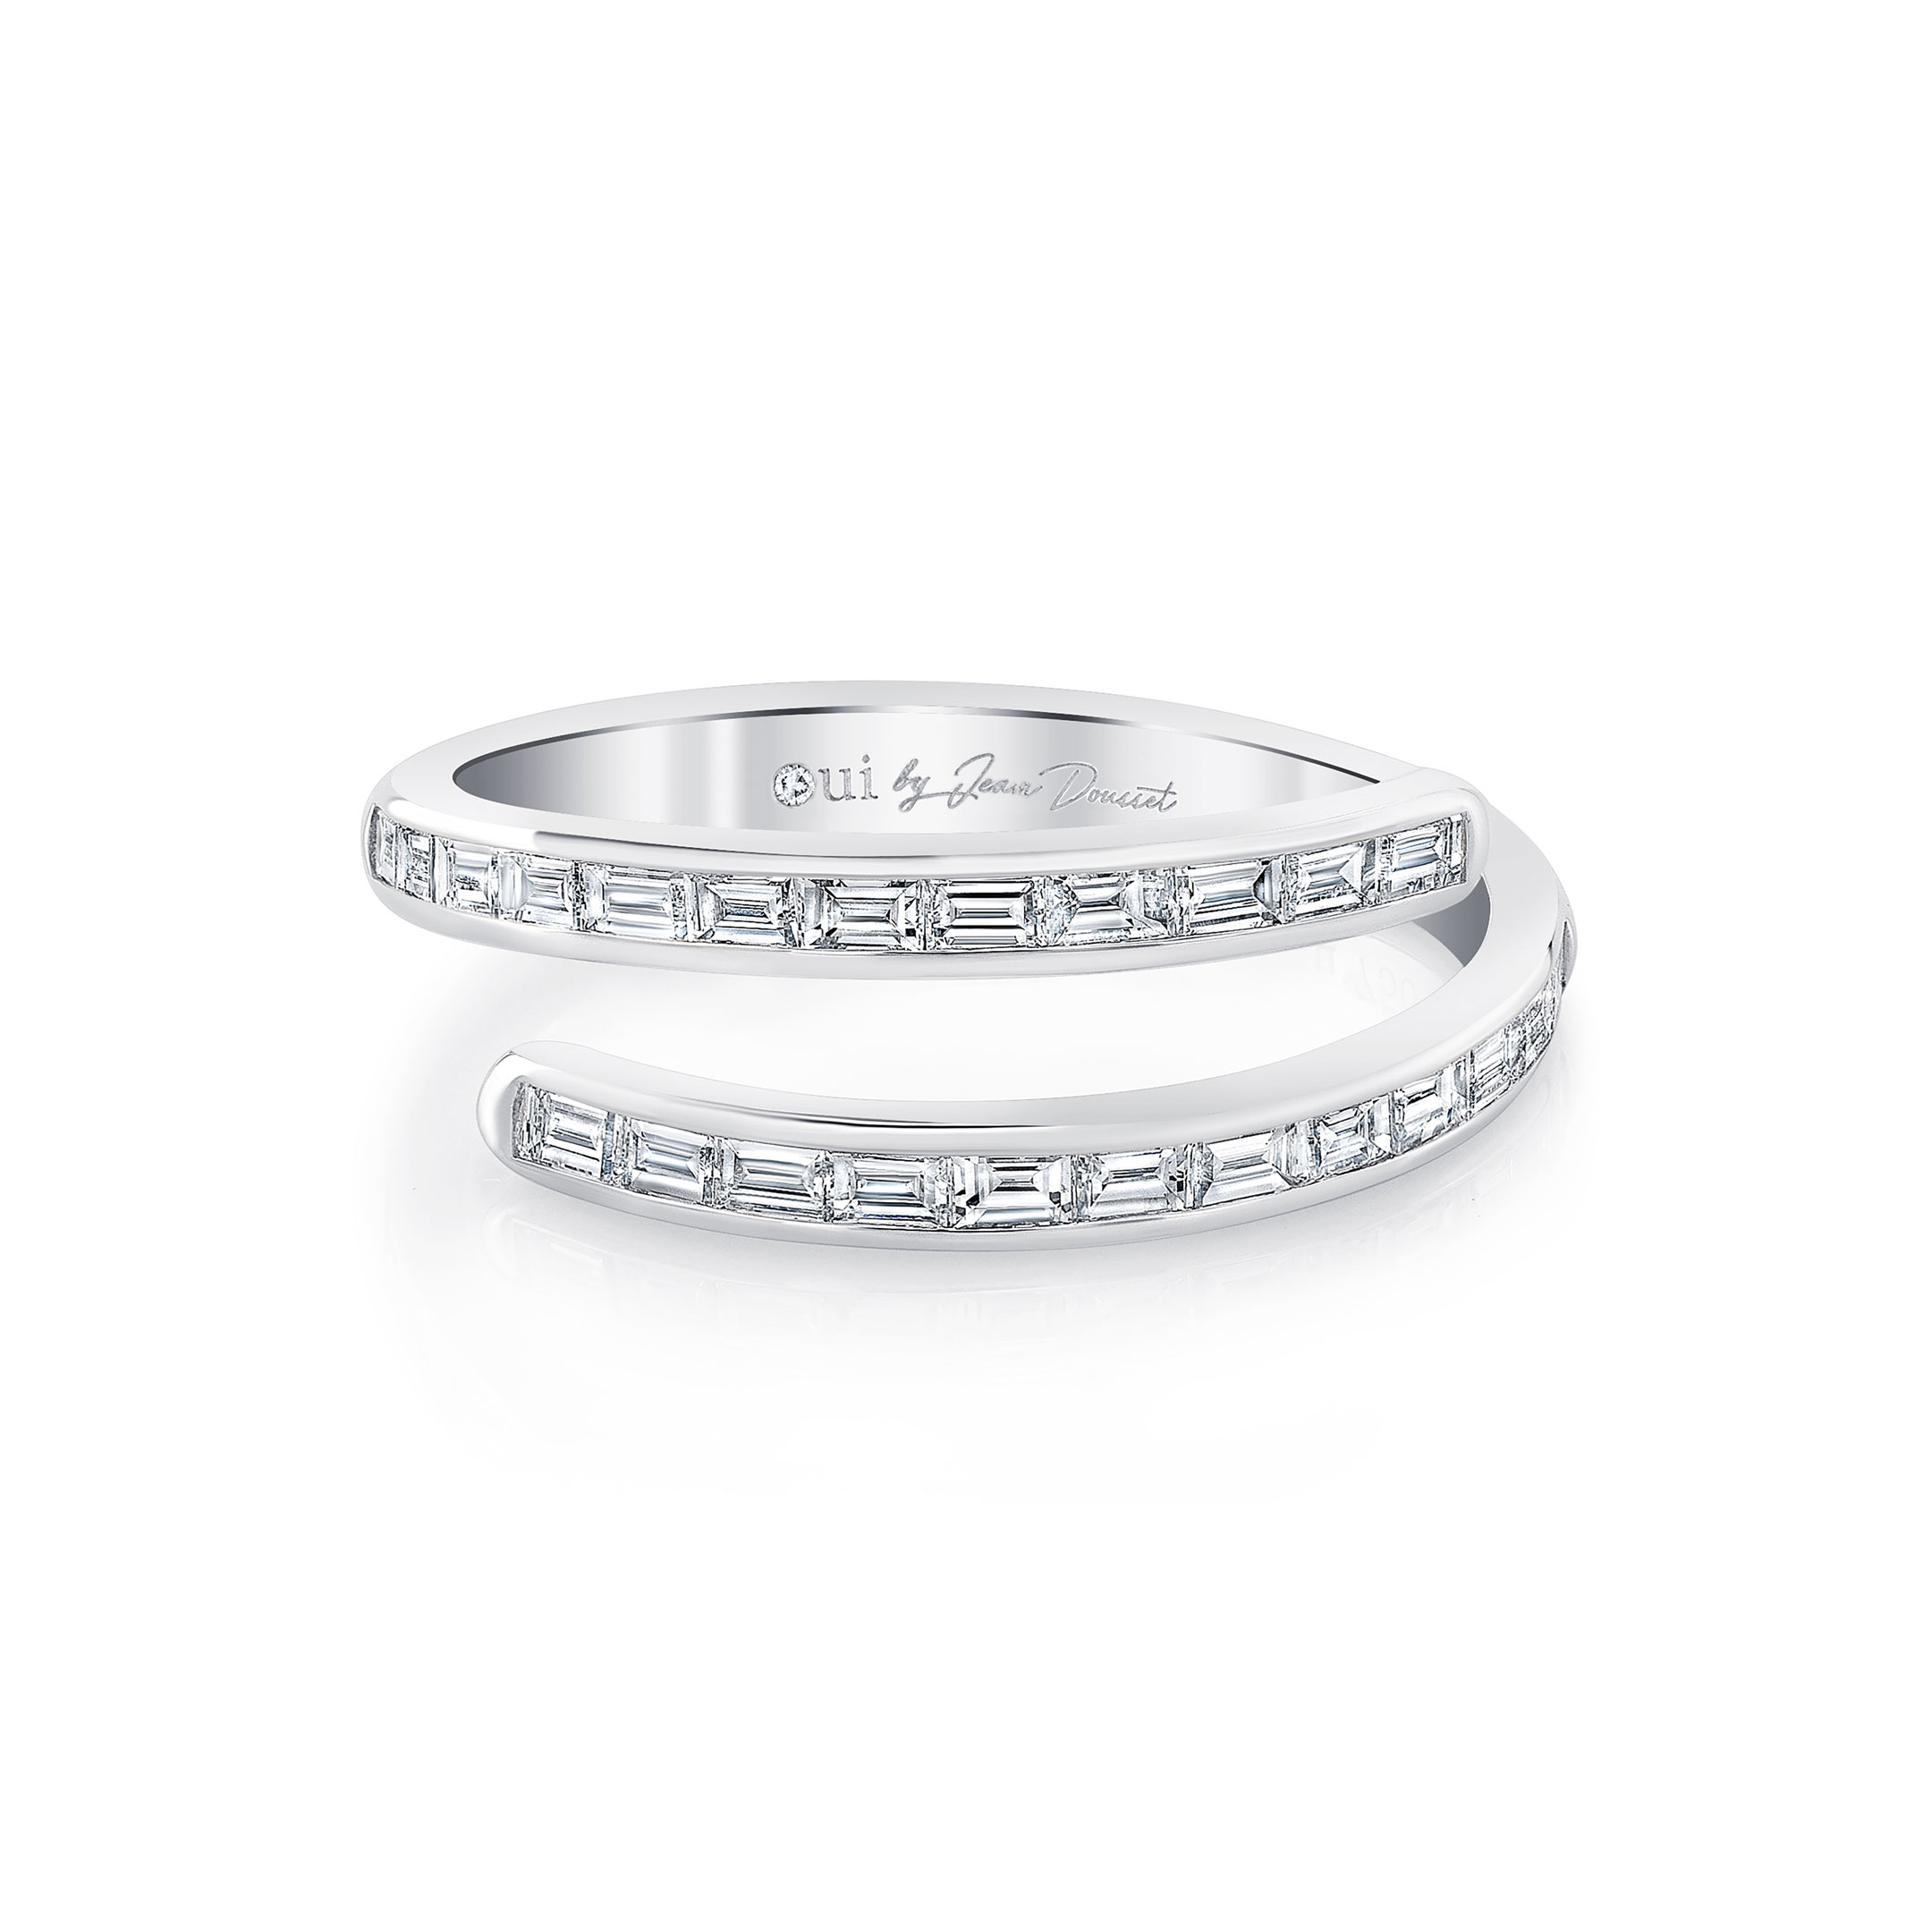 Baguette Bezel Diamond Pavé Wrap Ring in 18k White Gold Front View by Oui by Jean Dousset